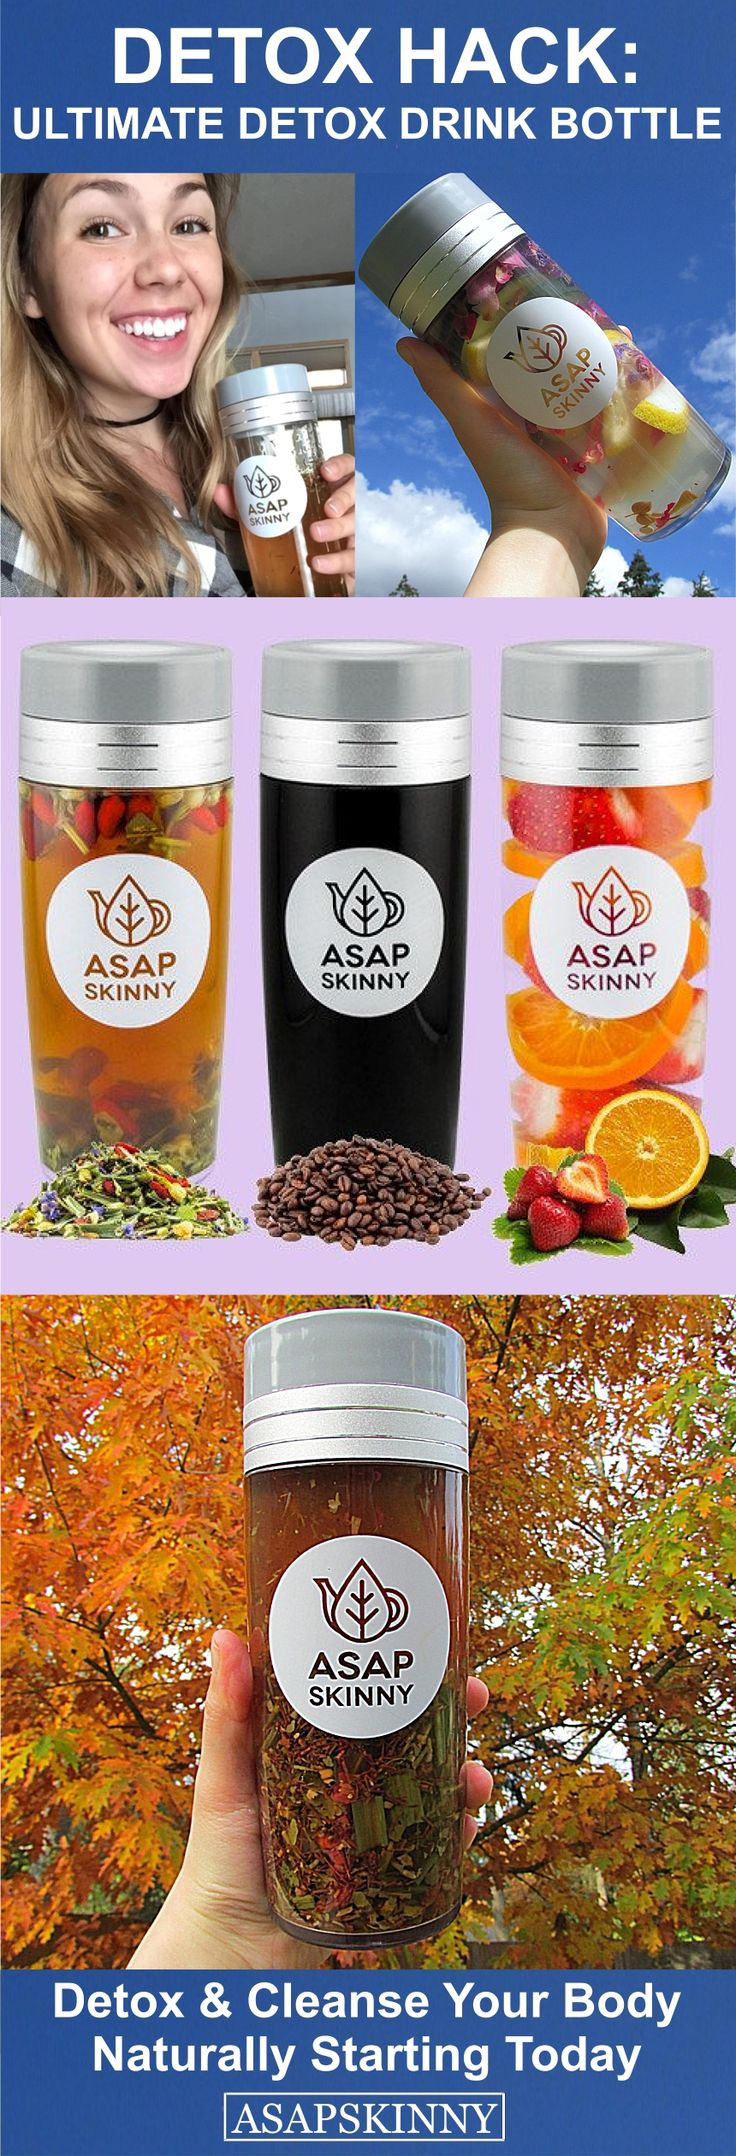 Detox & Cleanse with ASAPSKINNY! Kickstart Your New Healthy Lifestyle Starting TODAY. Our Versatile Tea Infuser Bottle comes with a FREE Removable Mesh Strainer/Steeper. Use it to Make Loose Leaf Tea, Fruit Infused Water or Coffee. Detox Your Body with Ease. Hurry, Selling Out FAST! SHOP NOW ➡ www.asapskinny.com